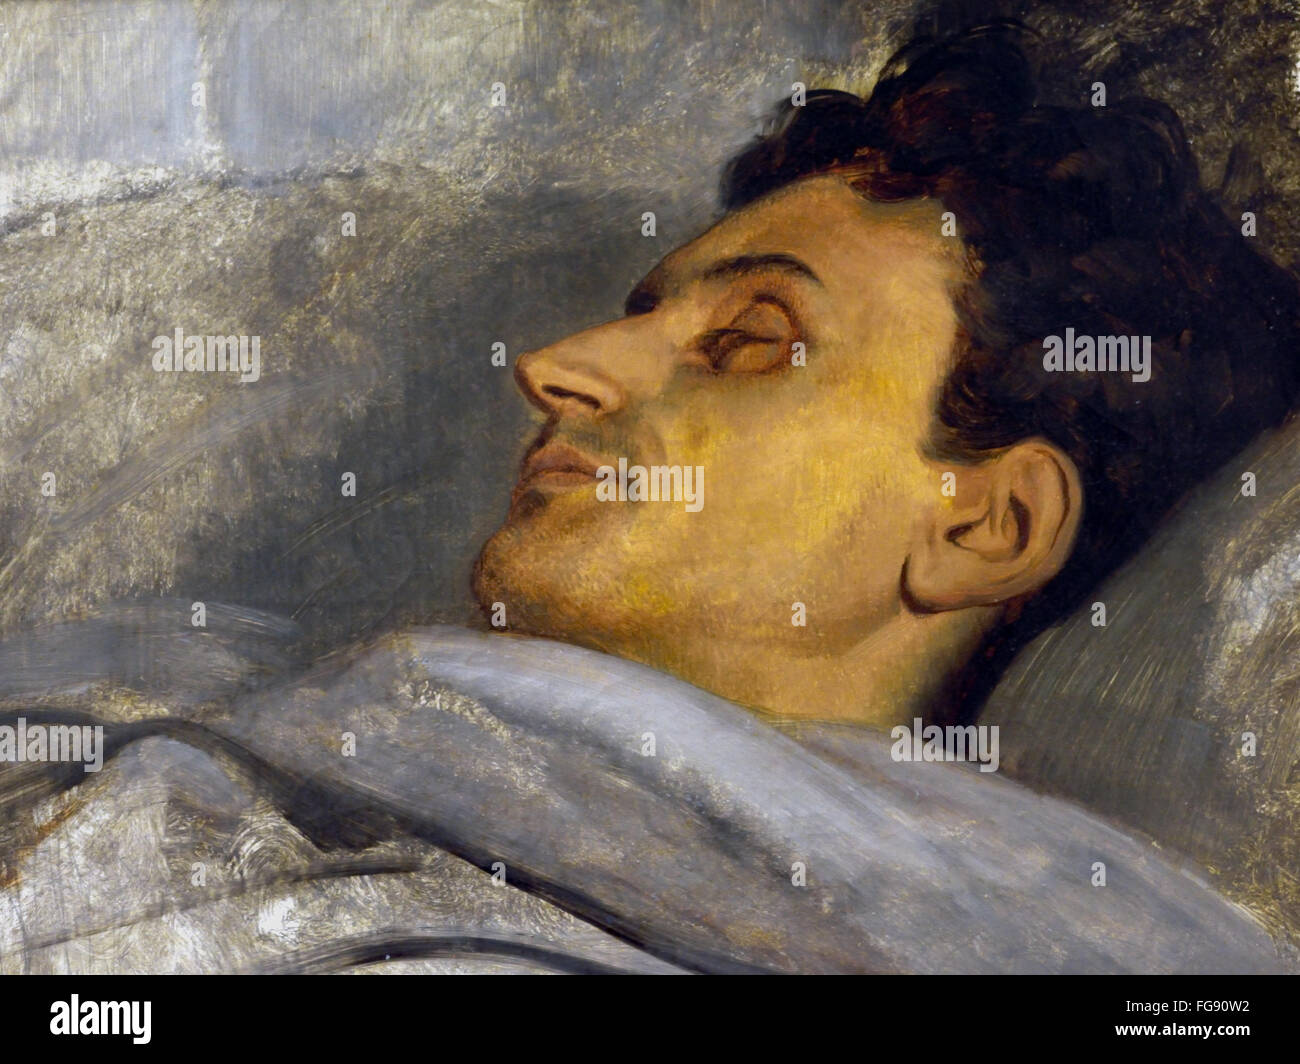 Armand Carrel on his deathbed 1836 Ary Scheffer 1795-1858 France French Stock Photo